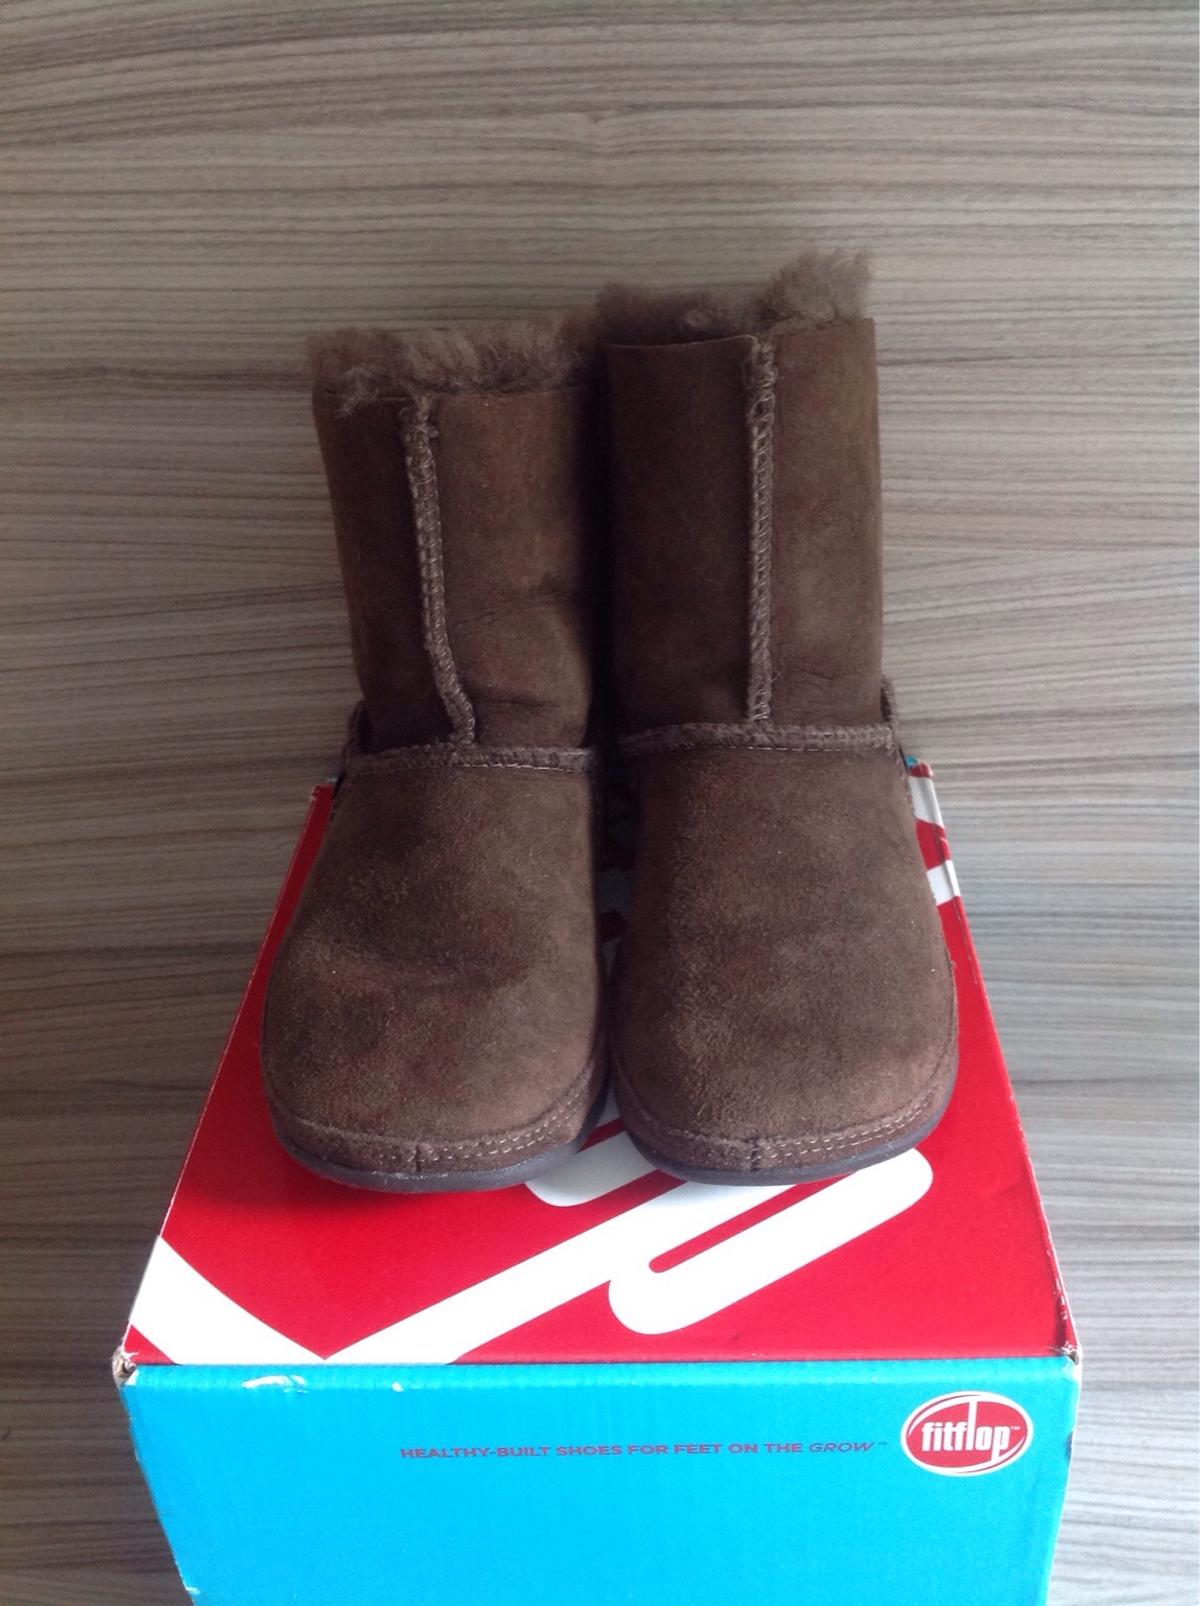 4fbb0324a Description. Fitflop Kids Mukluk Wobble Board Brown Suede pull on ankle  boots. UK